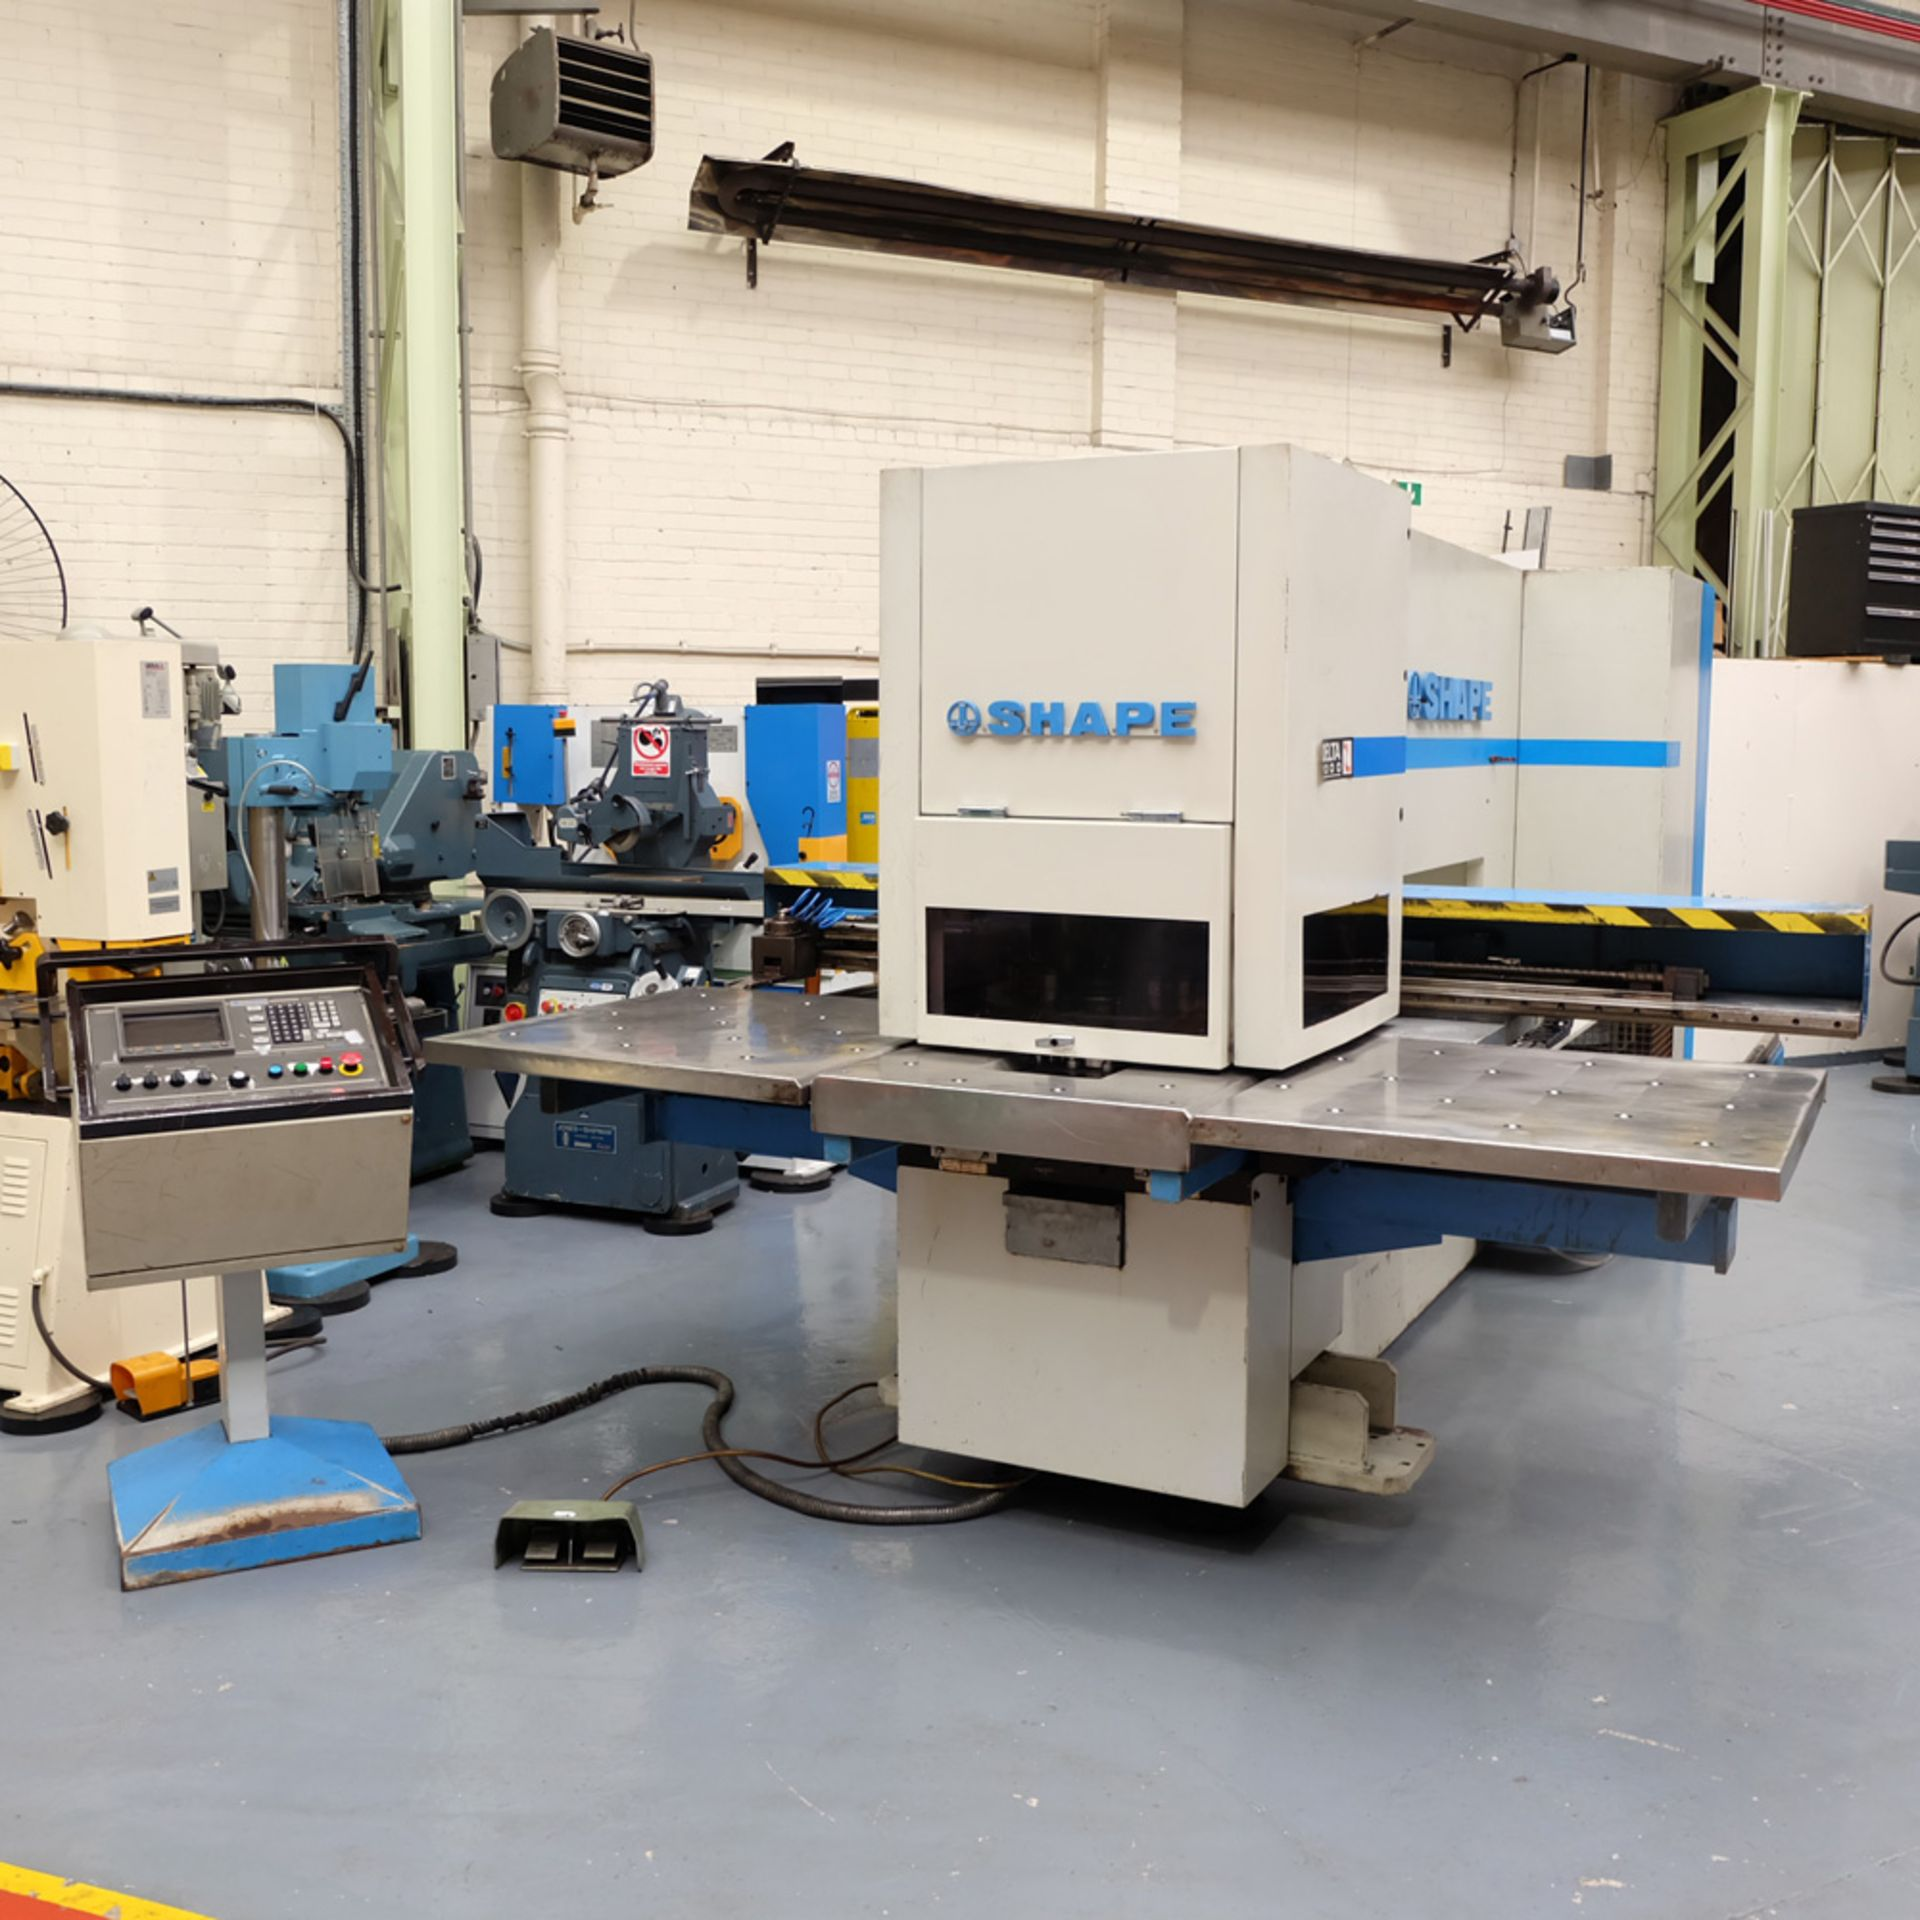 LVD SHAPE Model Delta 1000 Thick CNC Punching Machine.With Fanuc MNC 4000 Control.Capacity: 20 Tons. - Image 3 of 19